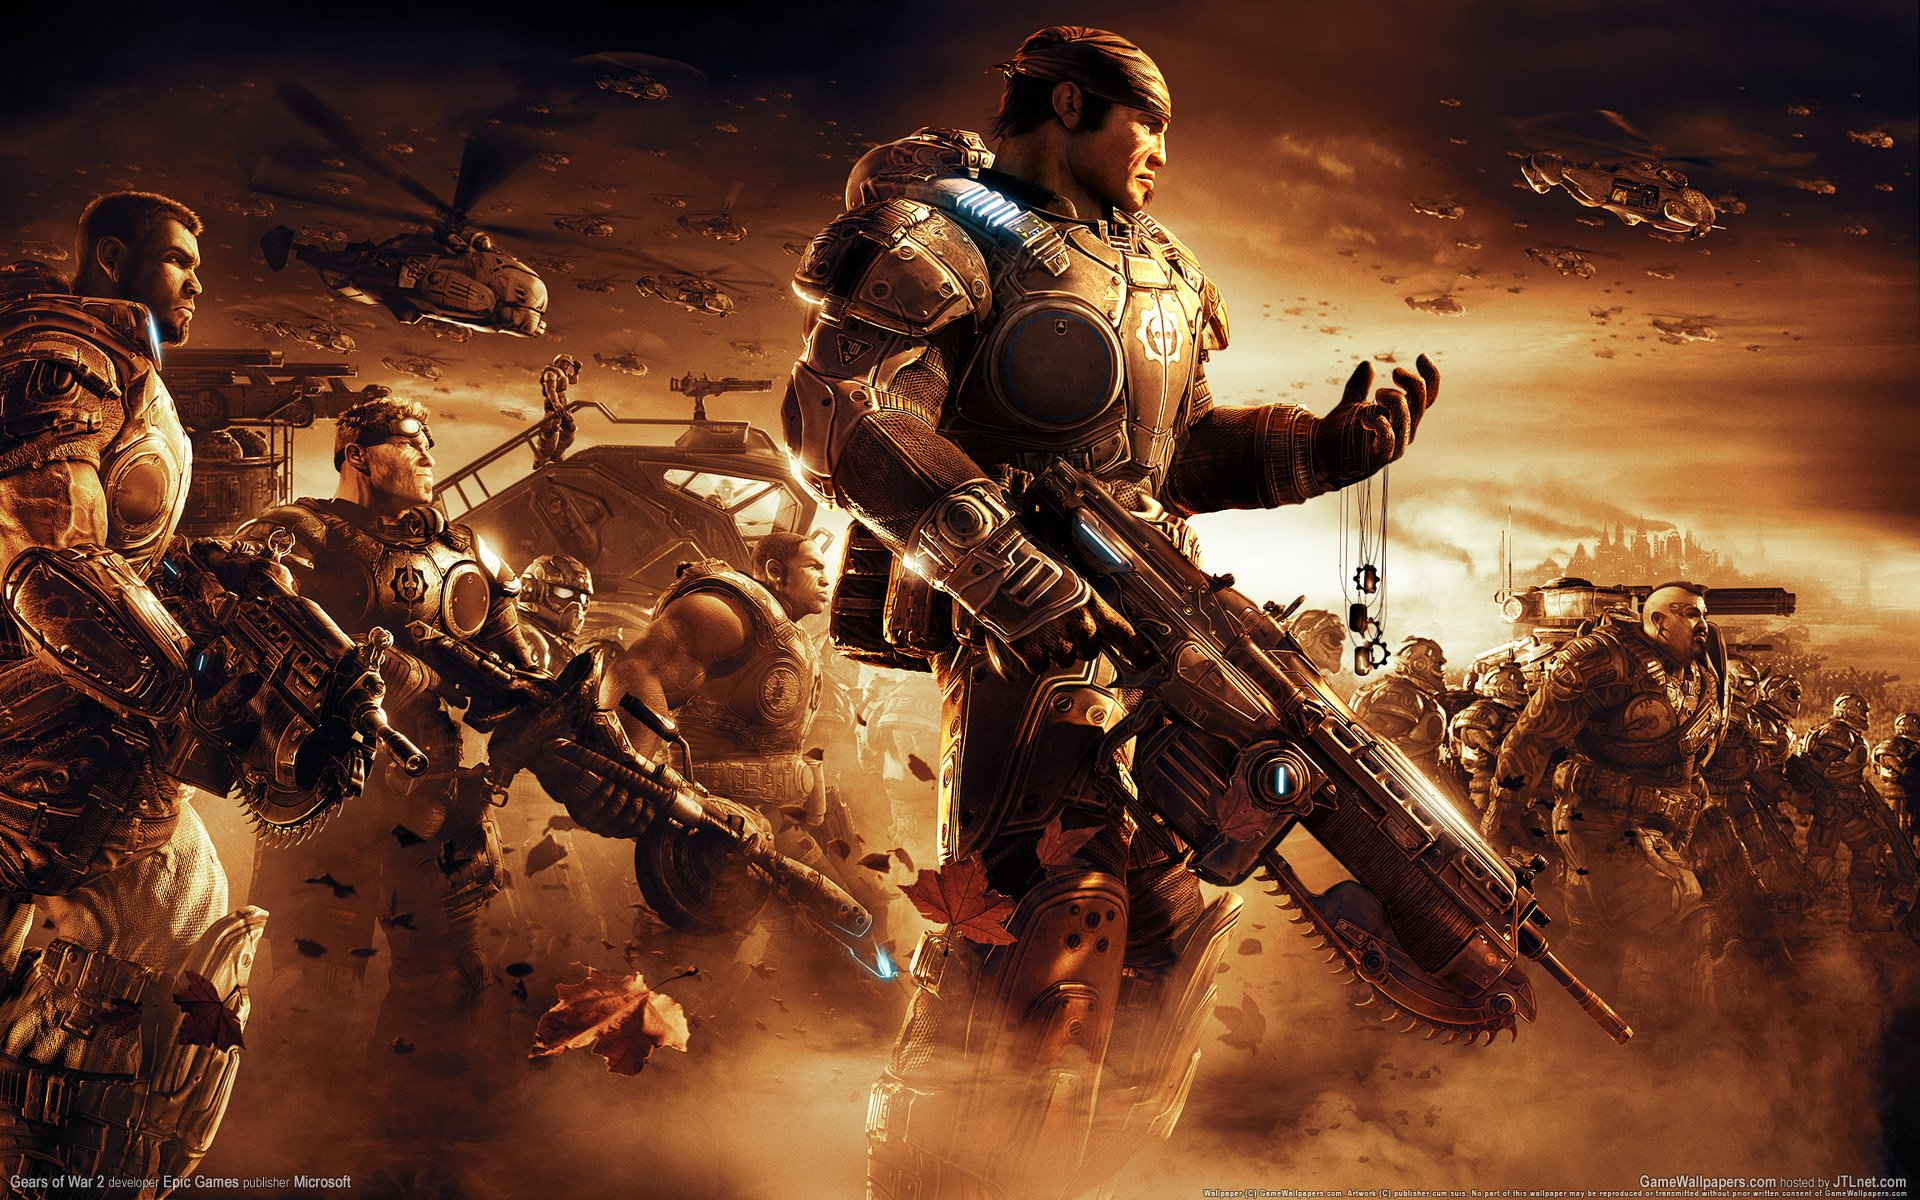 Gears Of War 3 Wallpapers: Gears Of War 2 Wallpaper